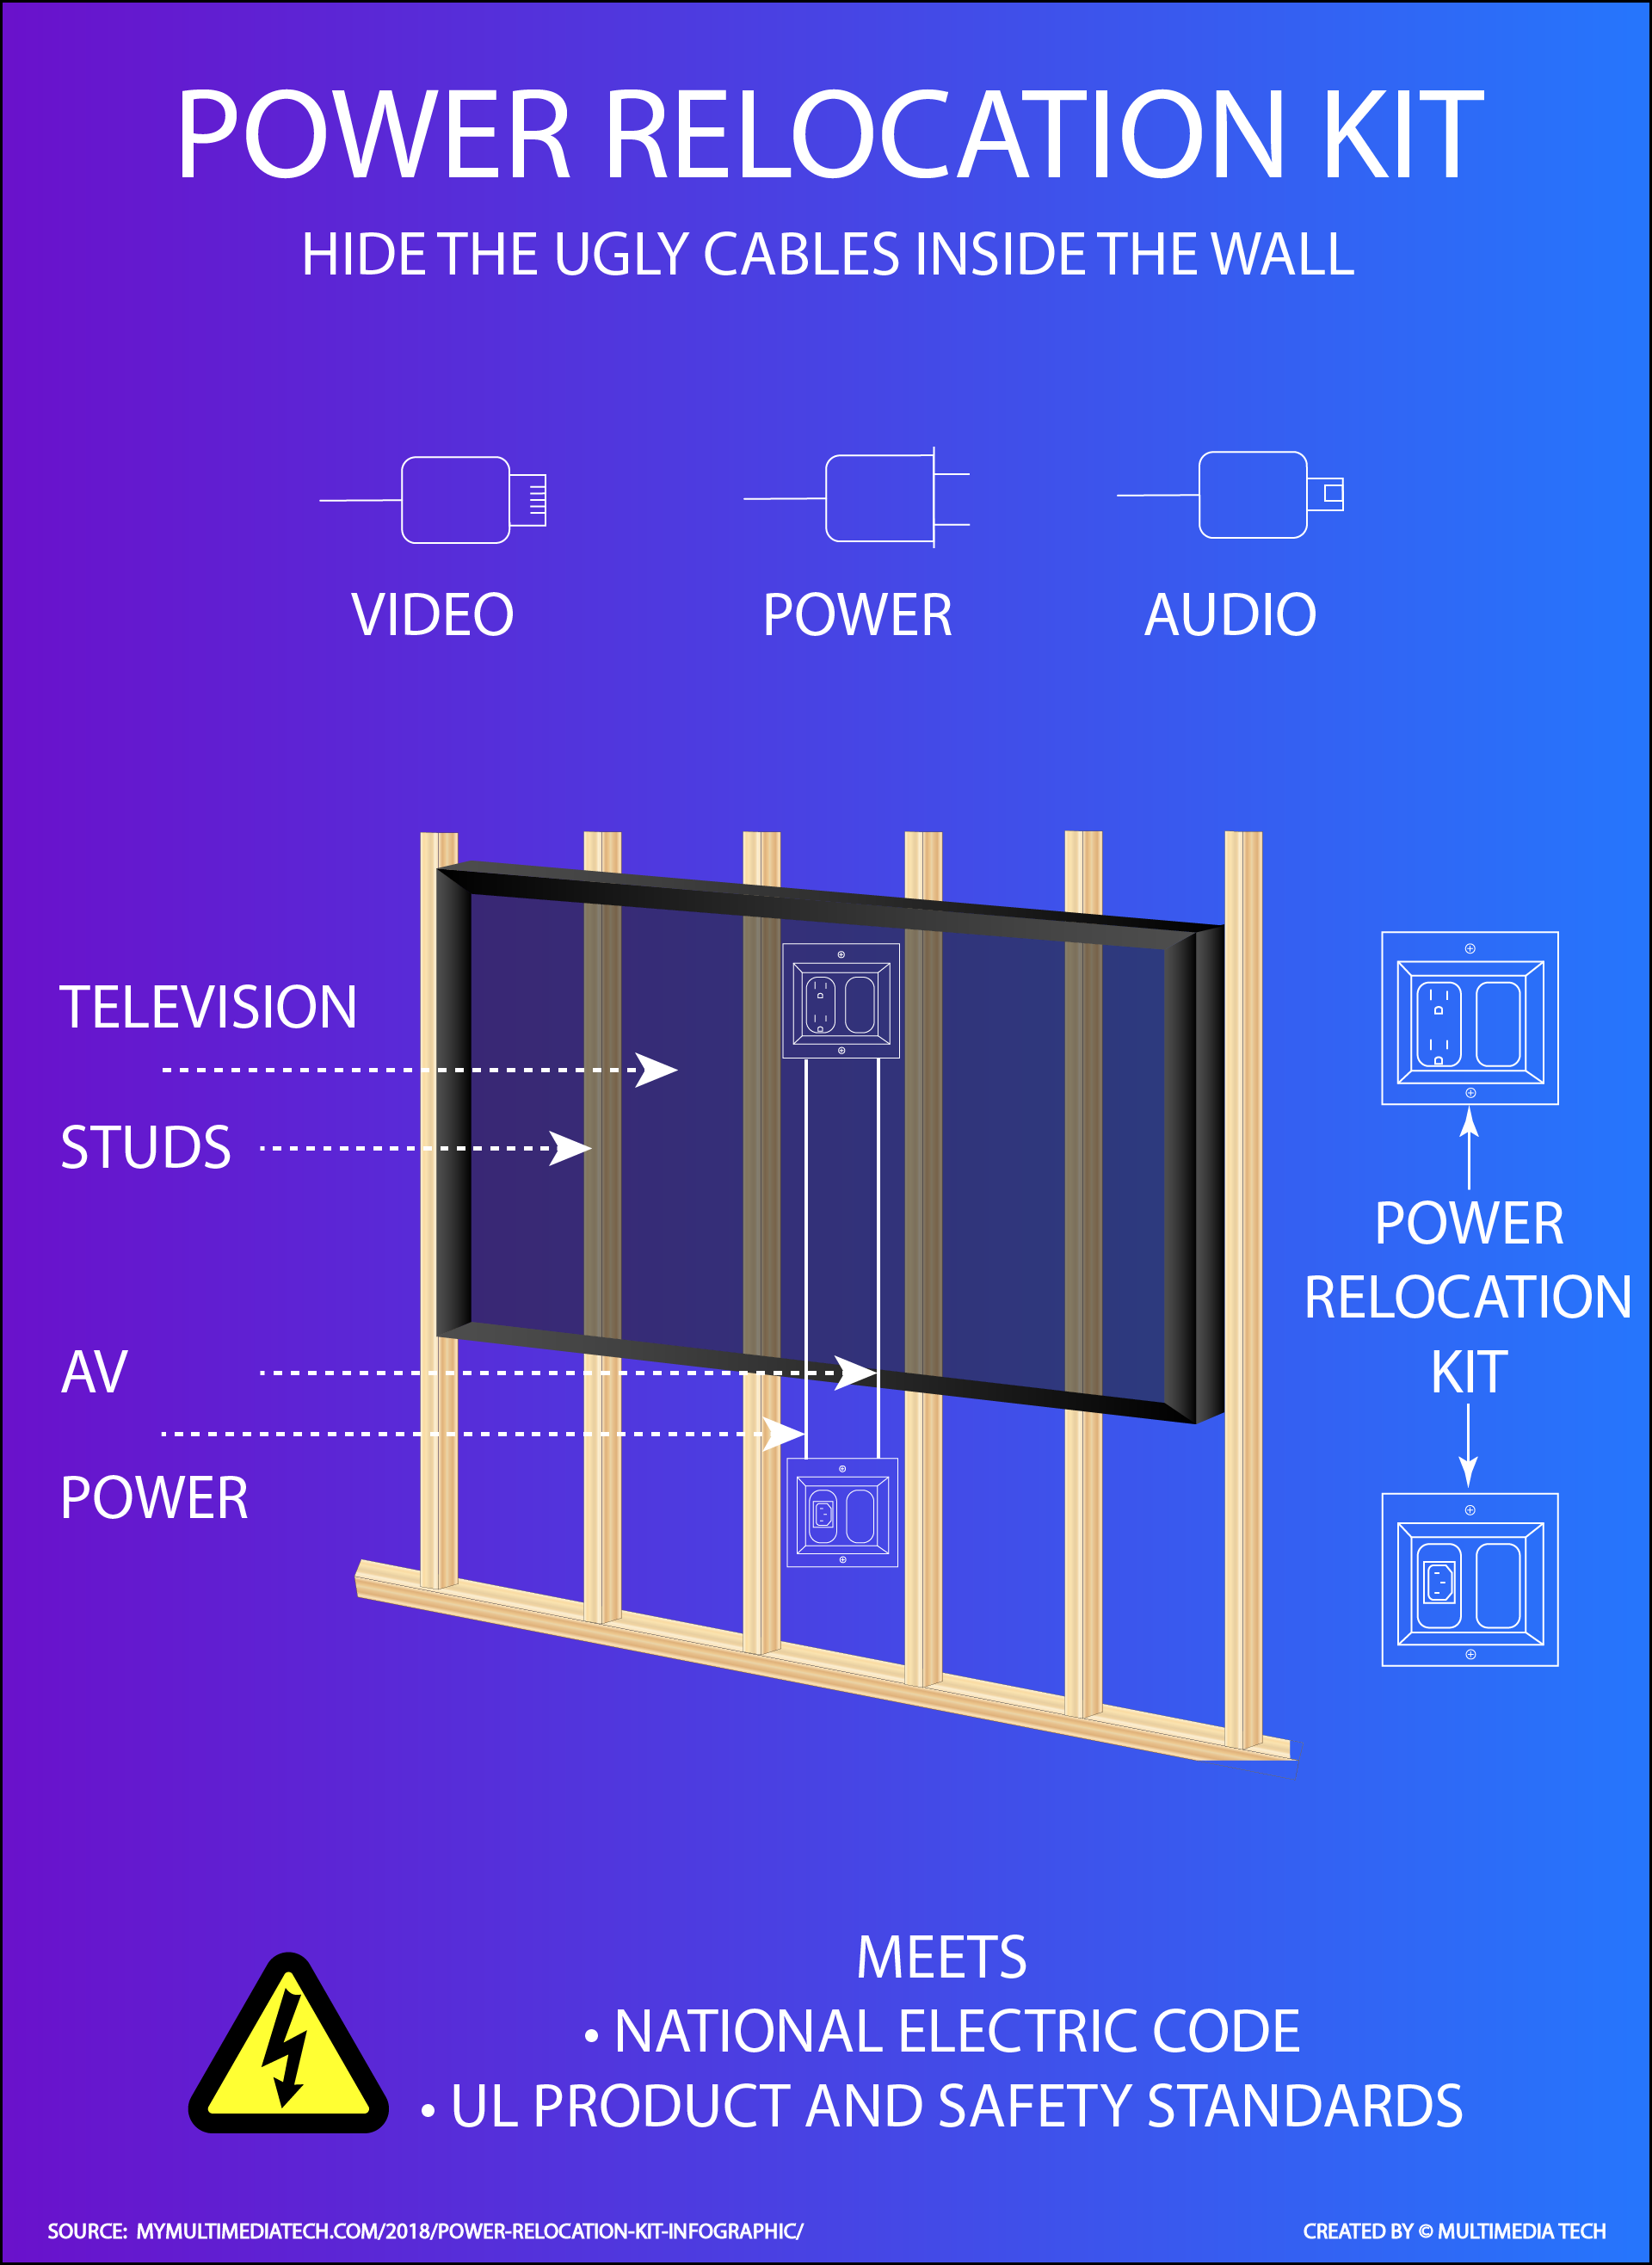 Power Relocation Kit Infographic